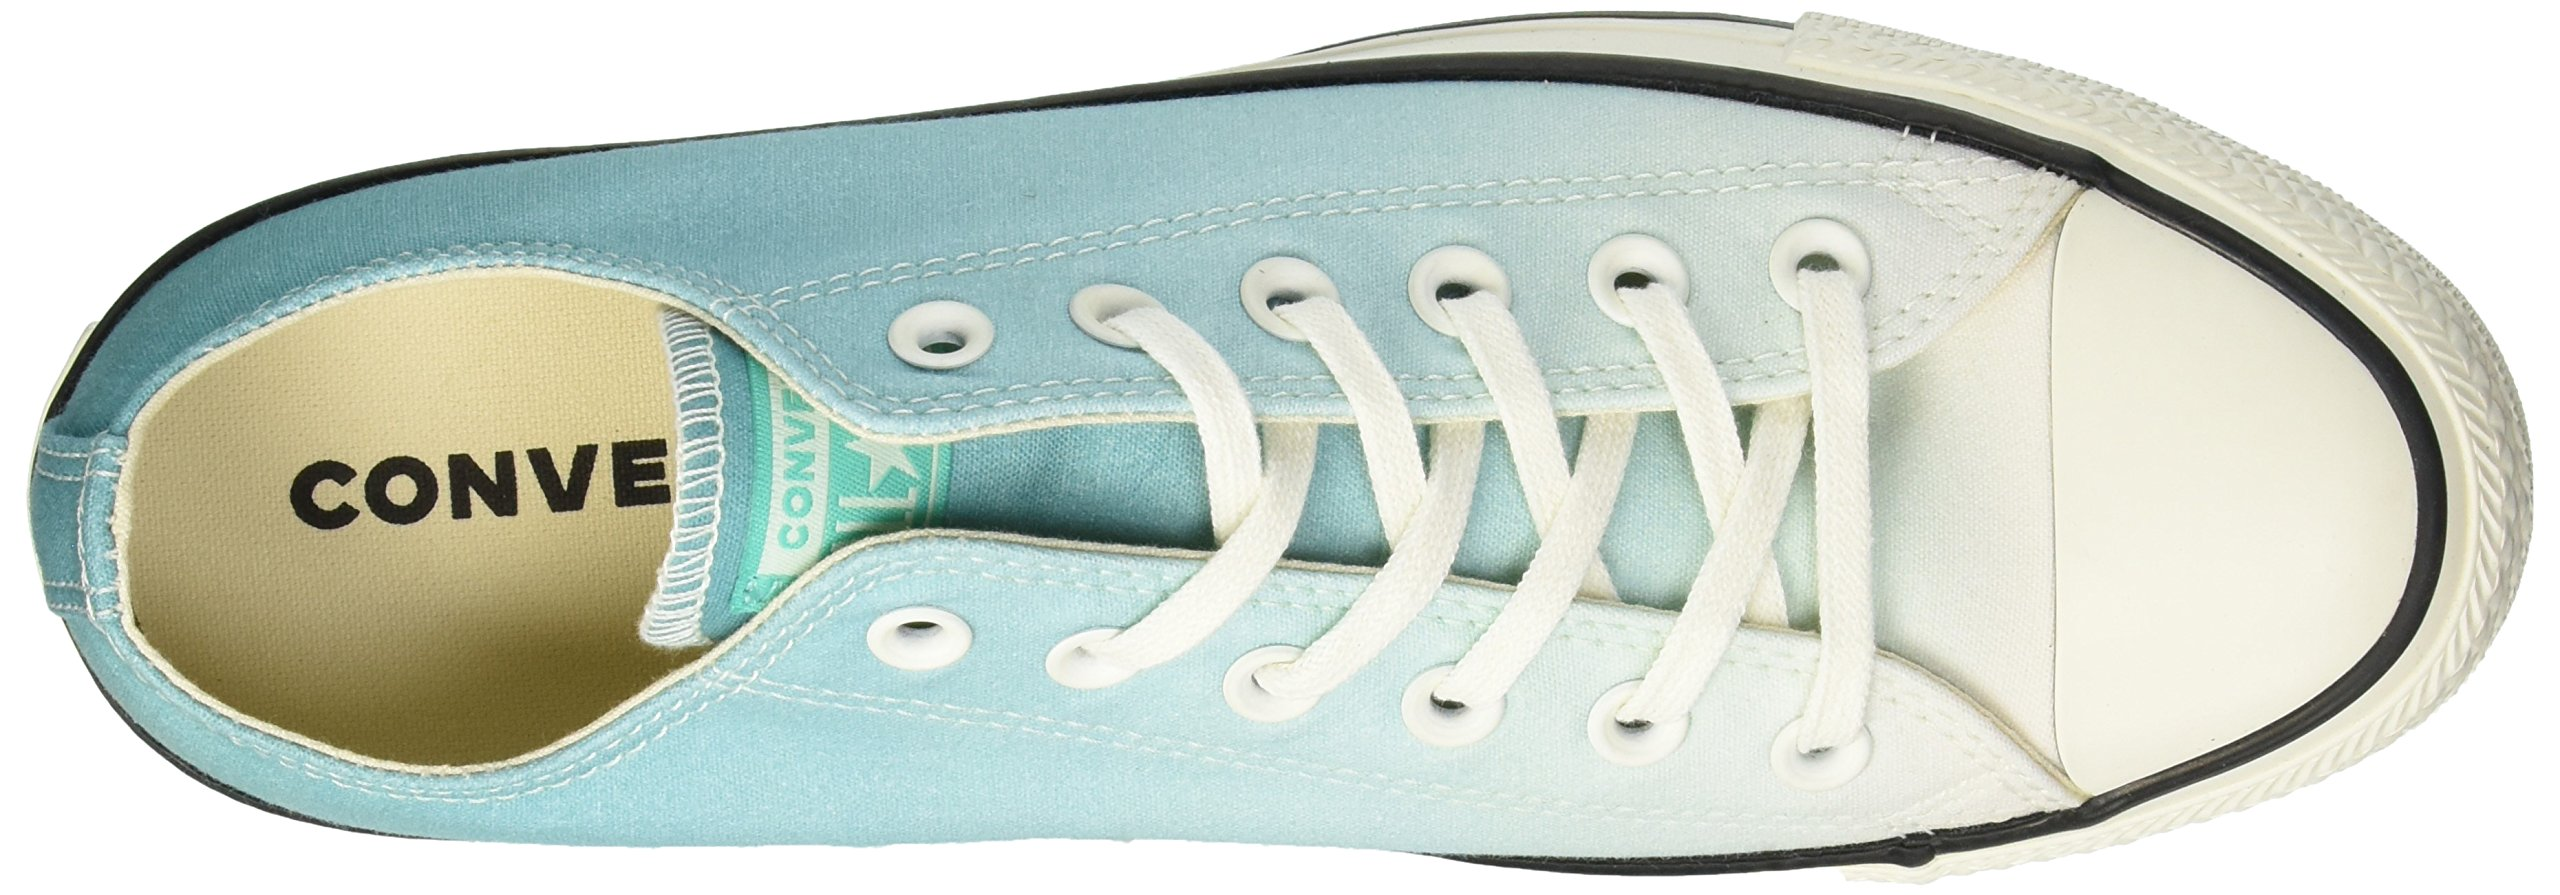 Converse Women's Chuck Taylor All Star Ombre Low TOP Sneaker, Pure Teal egret, 7.5 M US by Converse (Image #7)